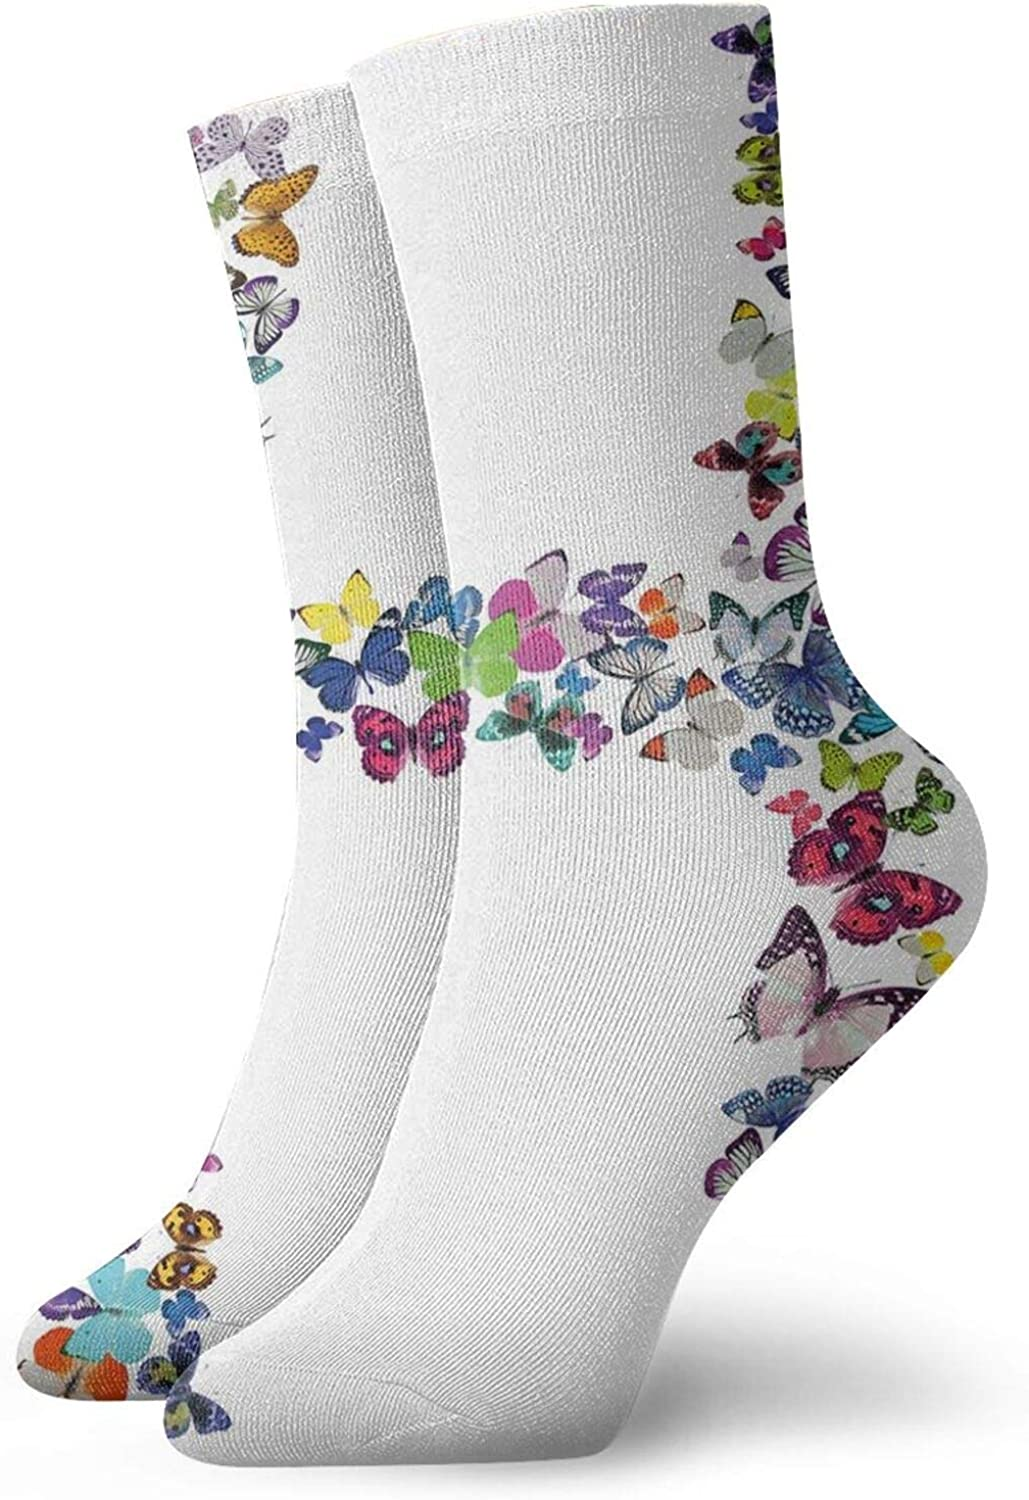 Compression High Socks-Cute Pattern Colorful Butterflies Lepidoptera Family Girls Exotic Nature Font Best for Running,Athletic,Hiking,Travel,Flight